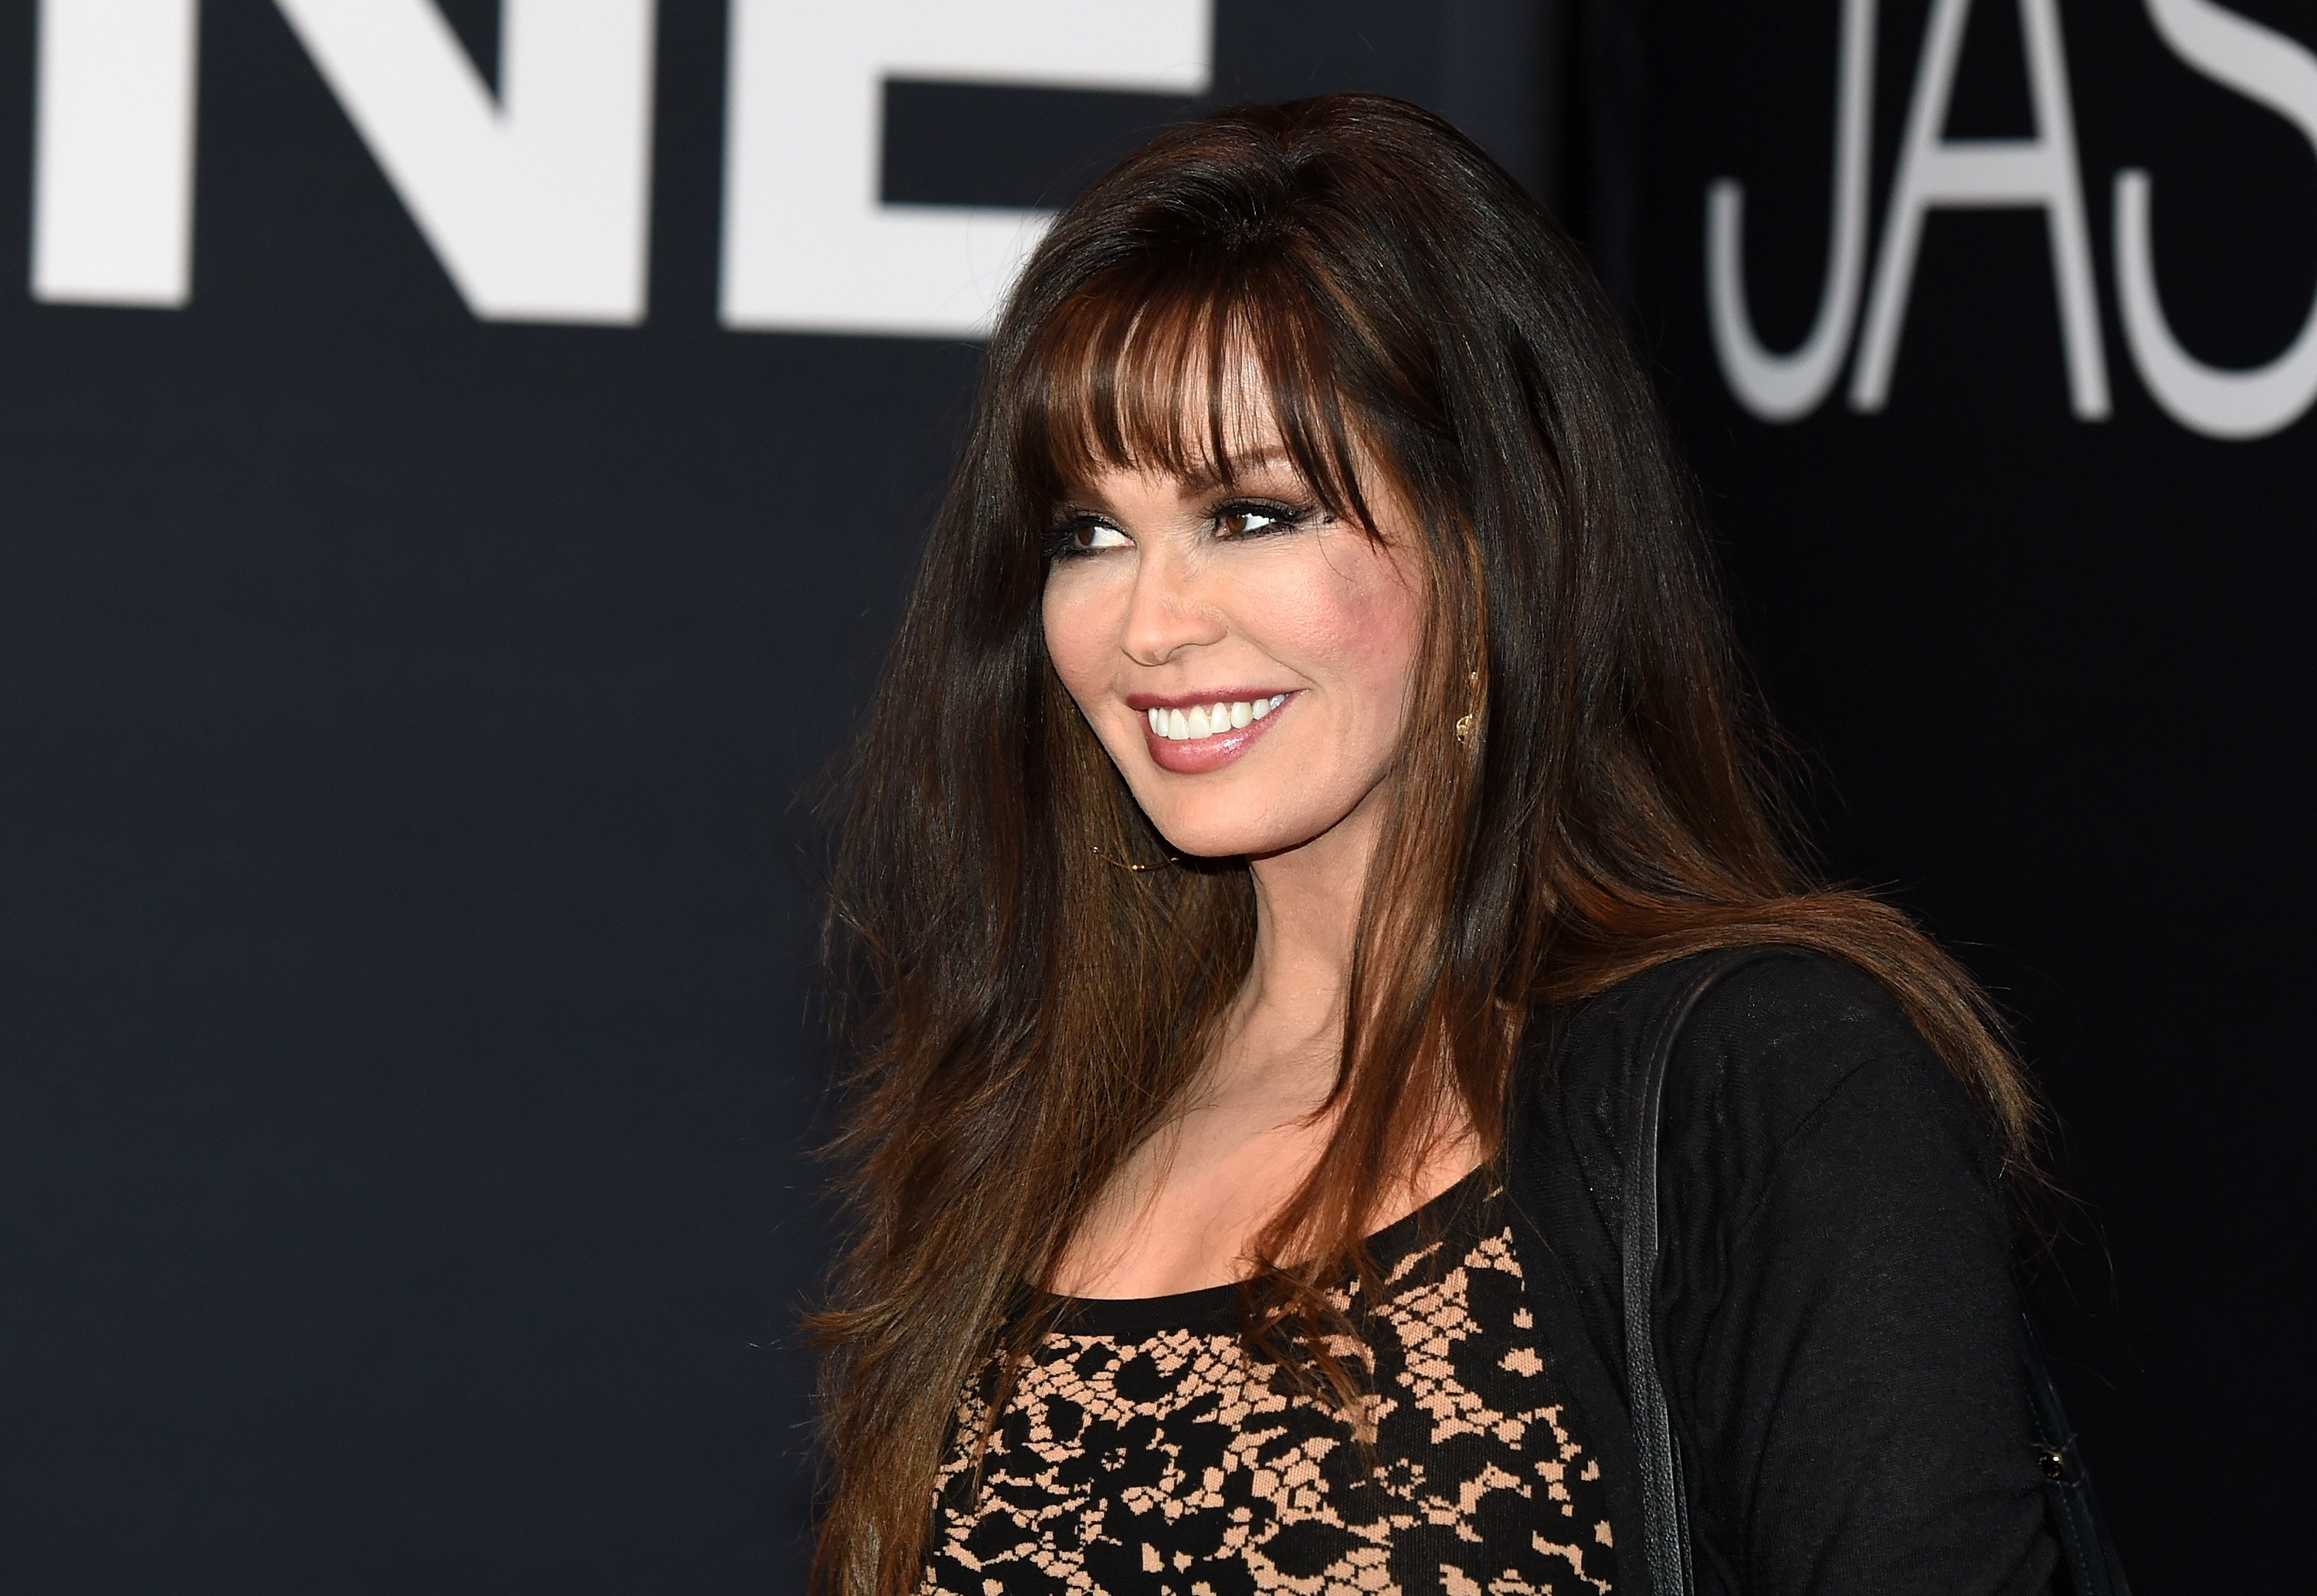 """Marie Osmond pictured attending the premiere of Universal Pictures' """"Jason Bourne"""" at The Colosseum at Caesars Palace, 2016, Las Vegas. 